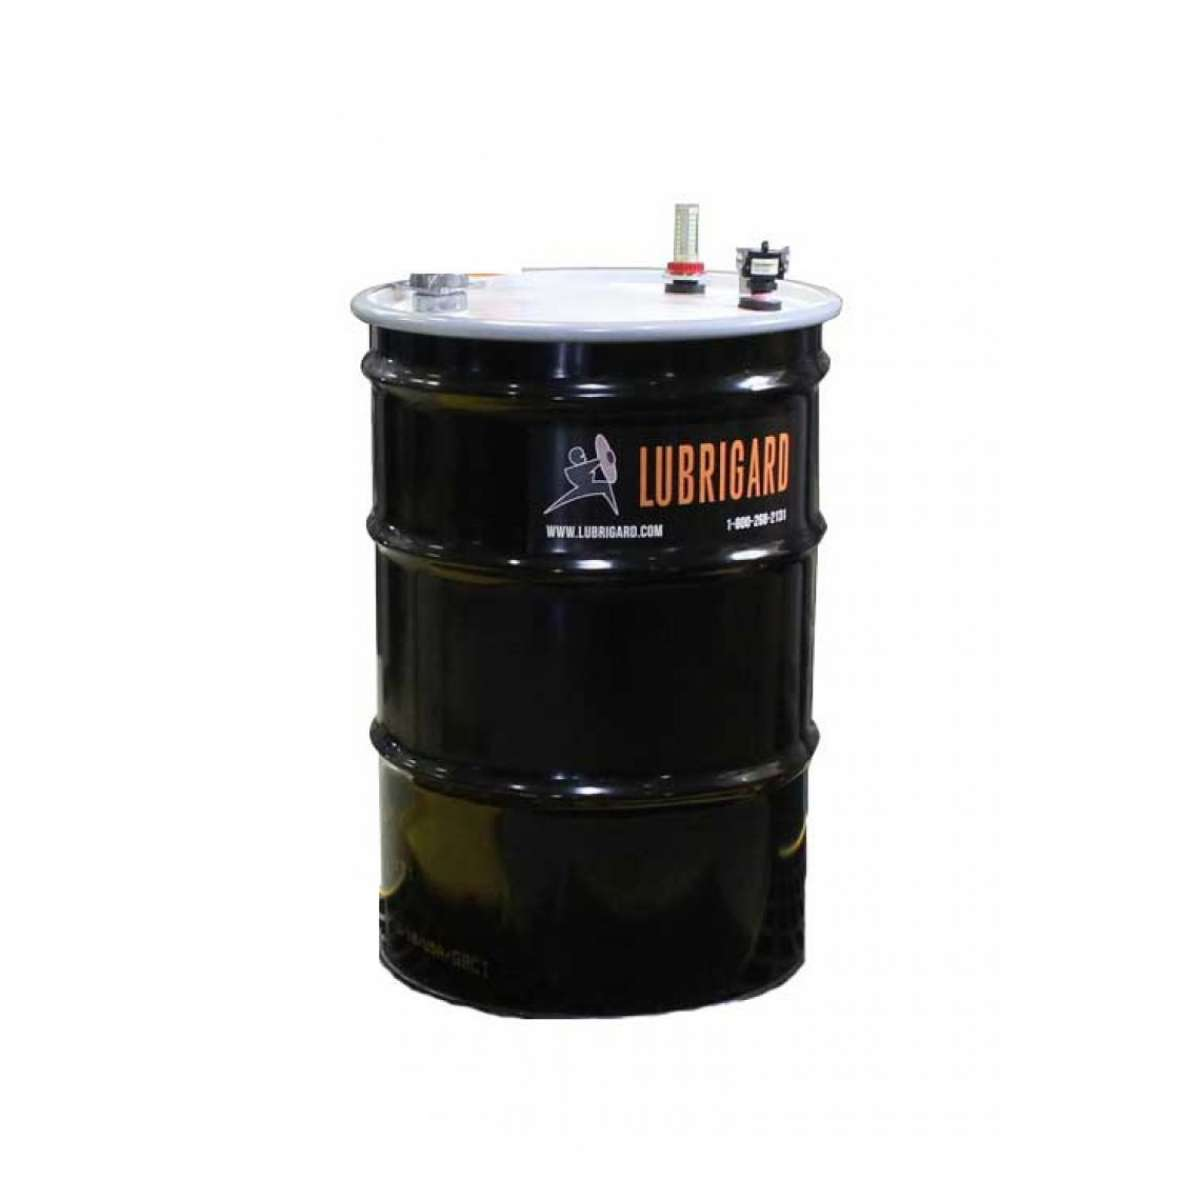 55 Gallon Steel Drum & Lid Assembly